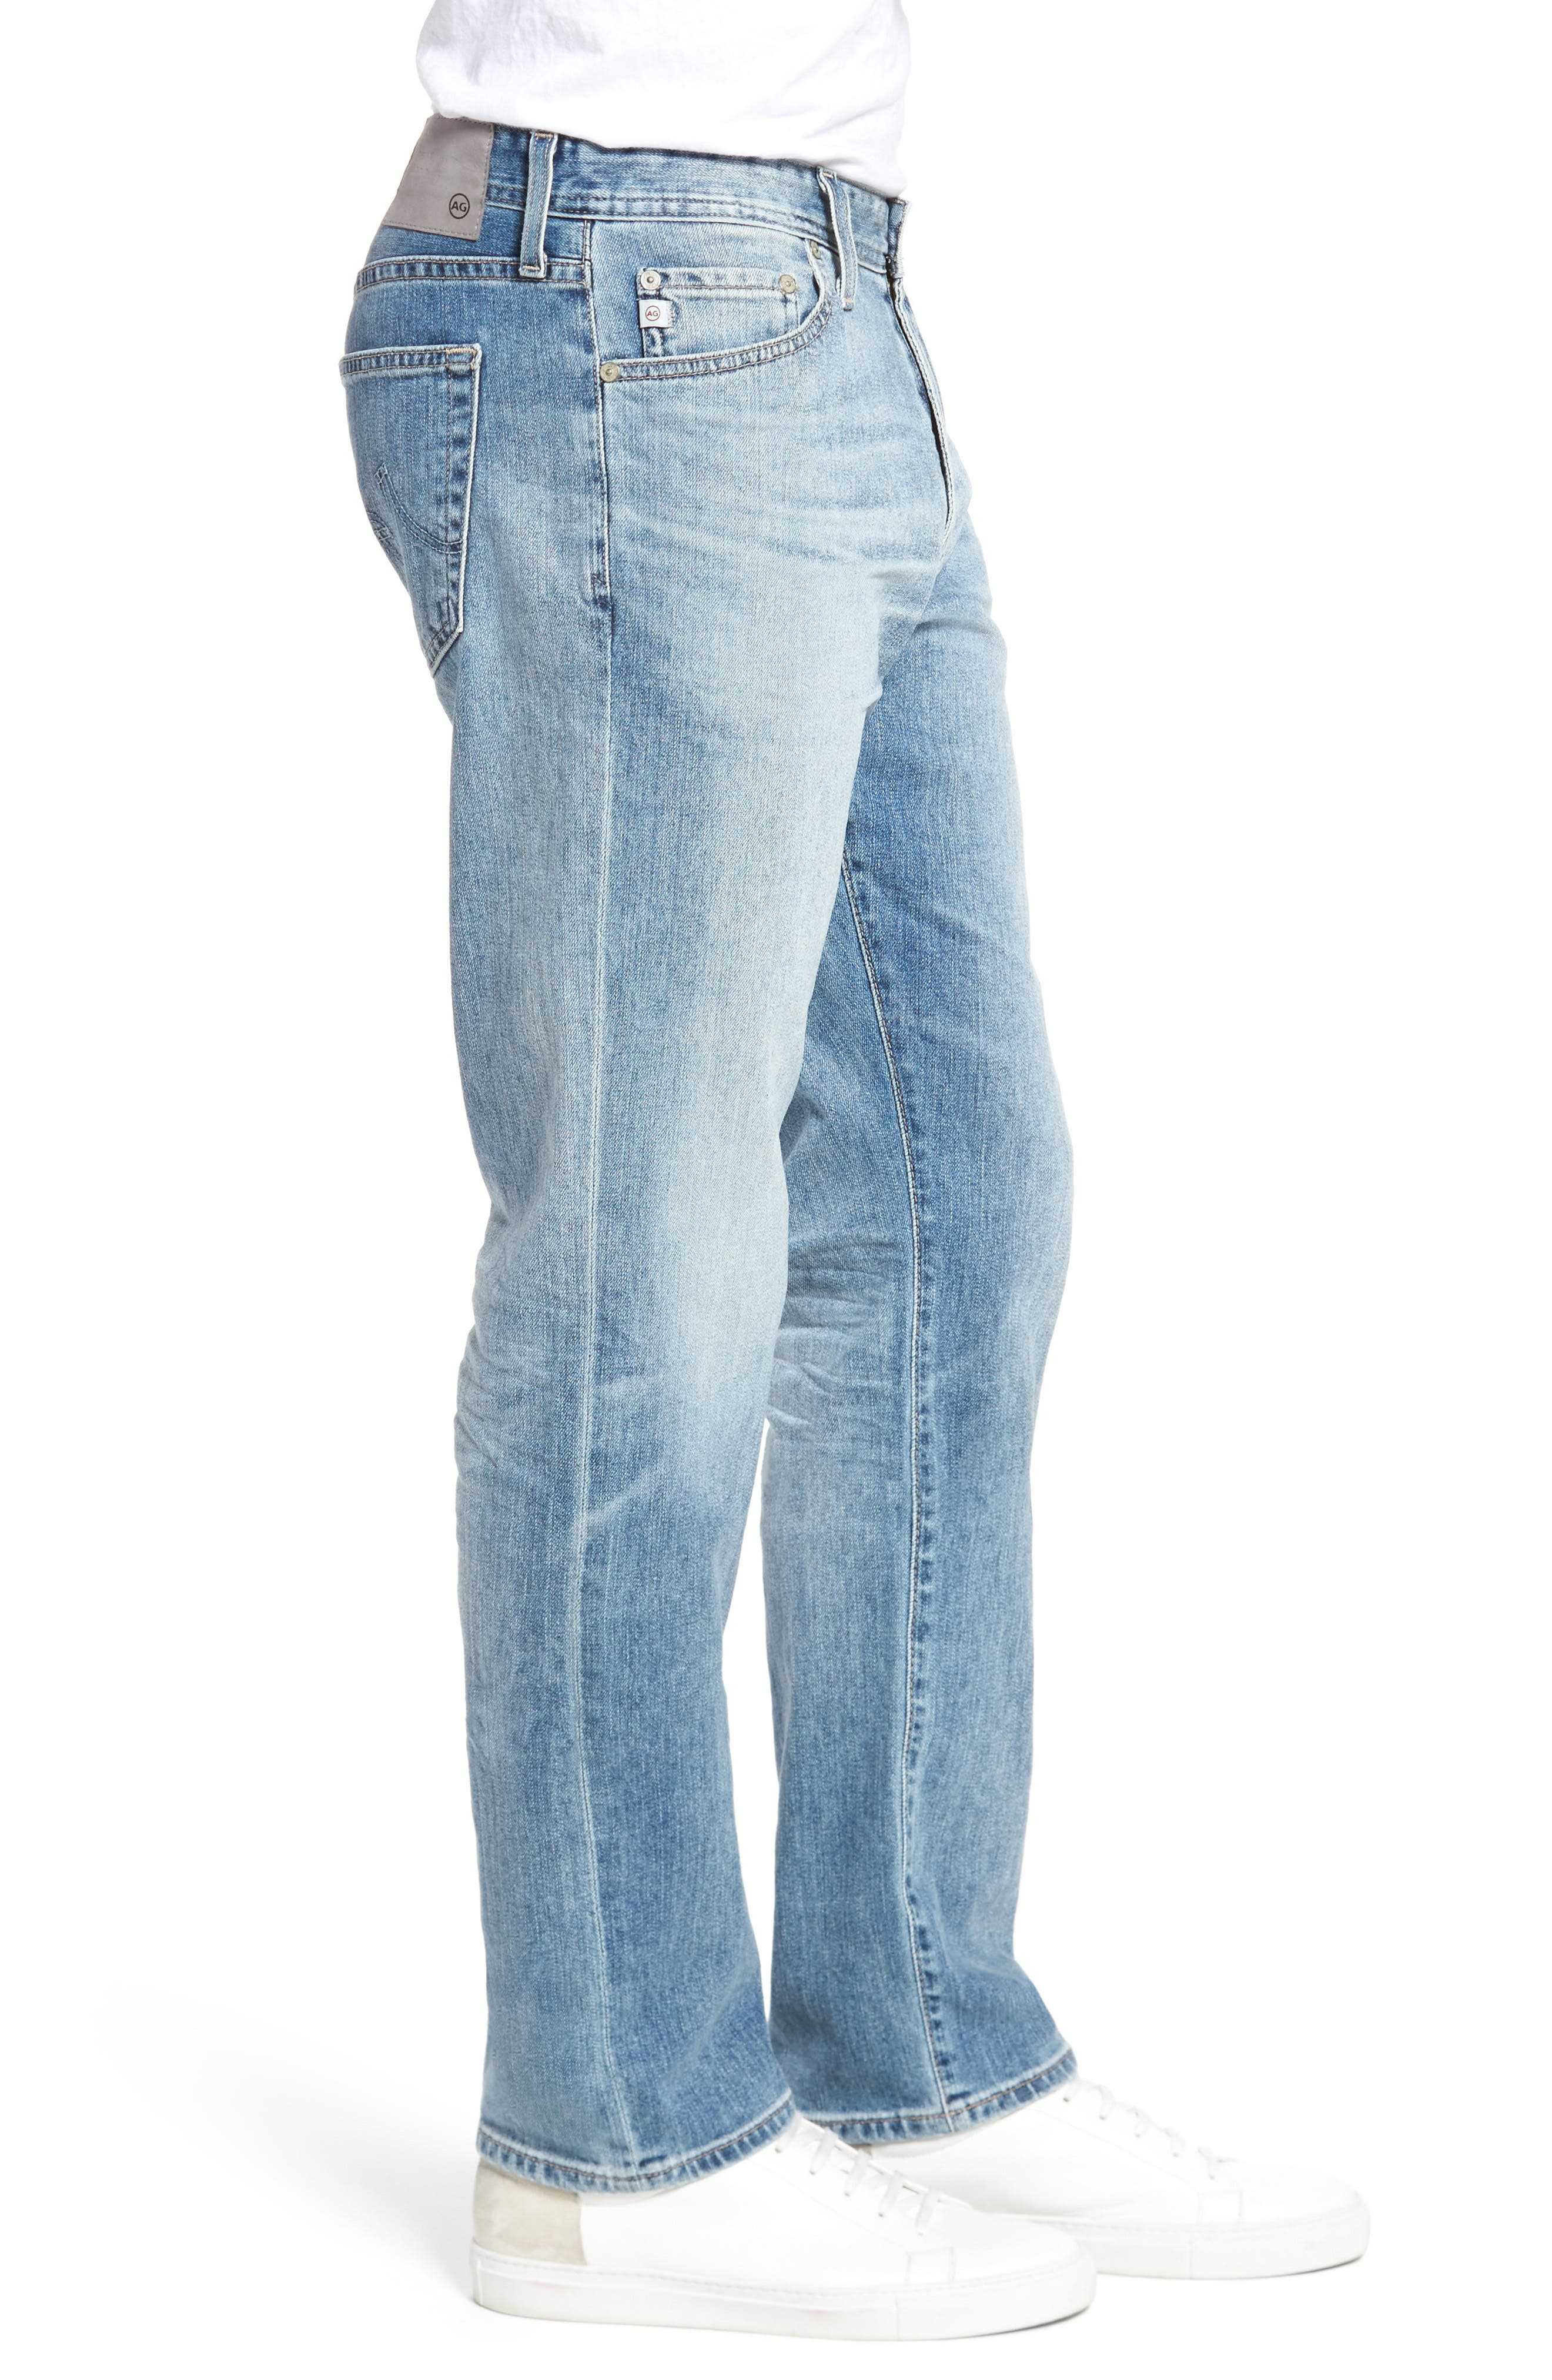 Everett Slim Straight Fit Jeans,                             Alternate thumbnail 3, color,                             452